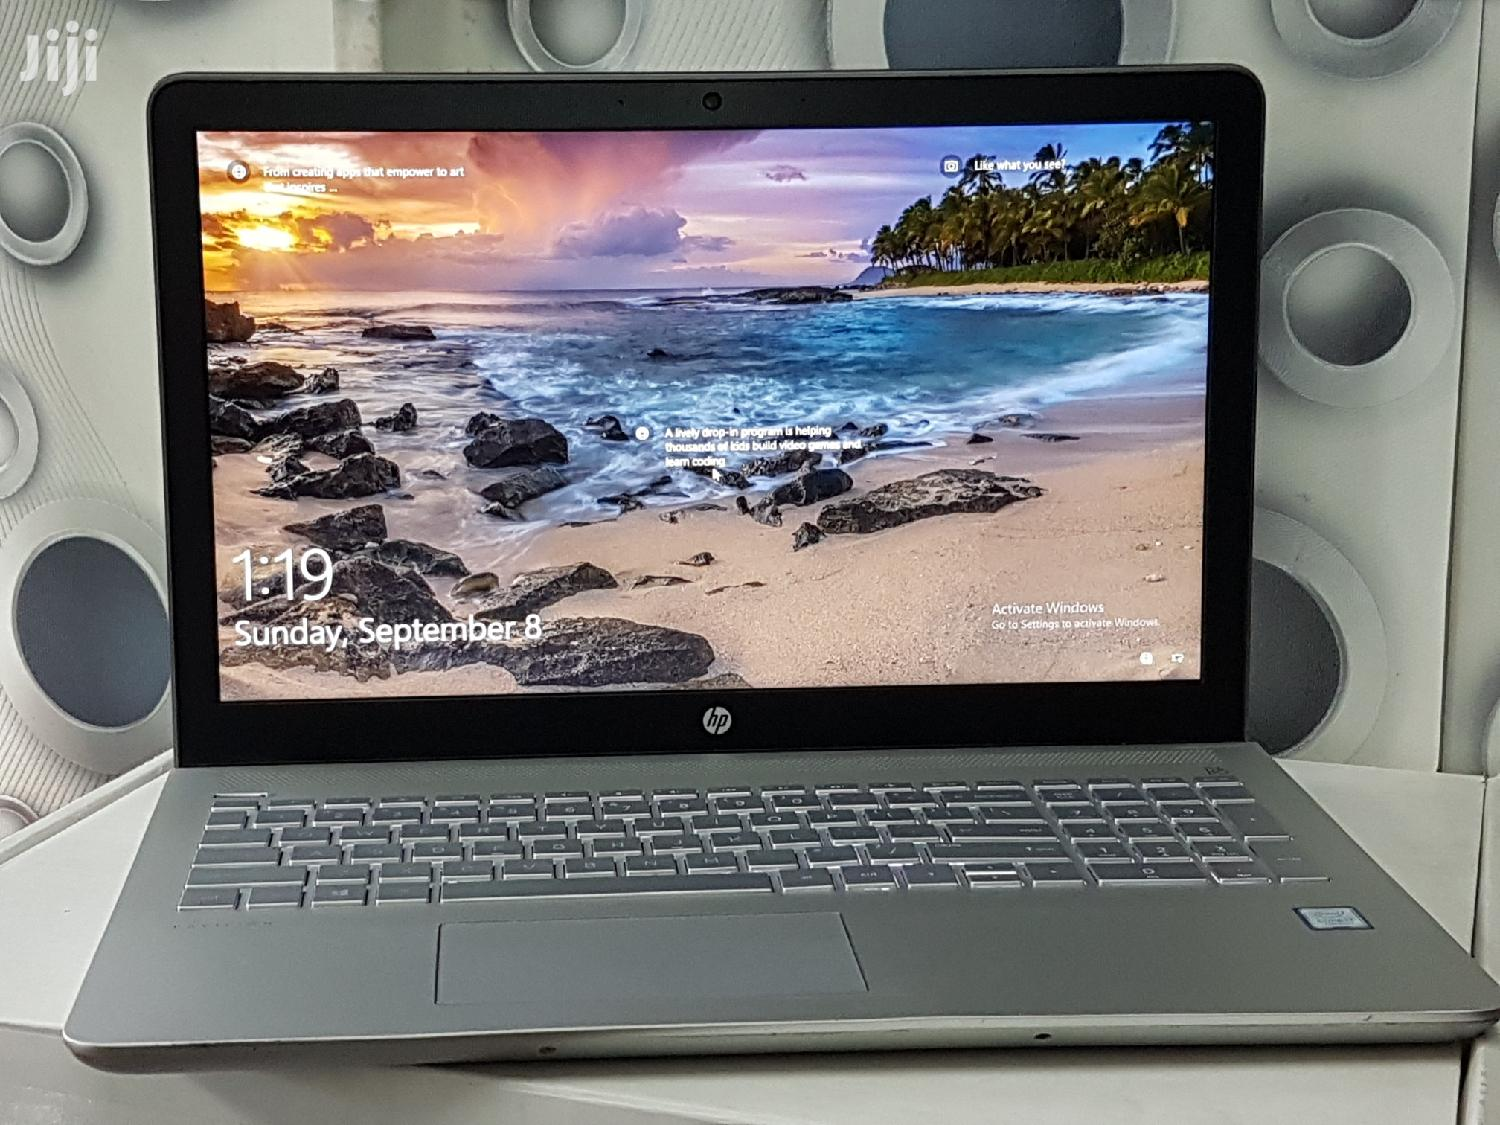 New Laptop HP Pavilion 15t 8GB Intel Core i5 HDD 256GB   Laptops & Computers for sale in Nairobi Central, Nairobi, Kenya